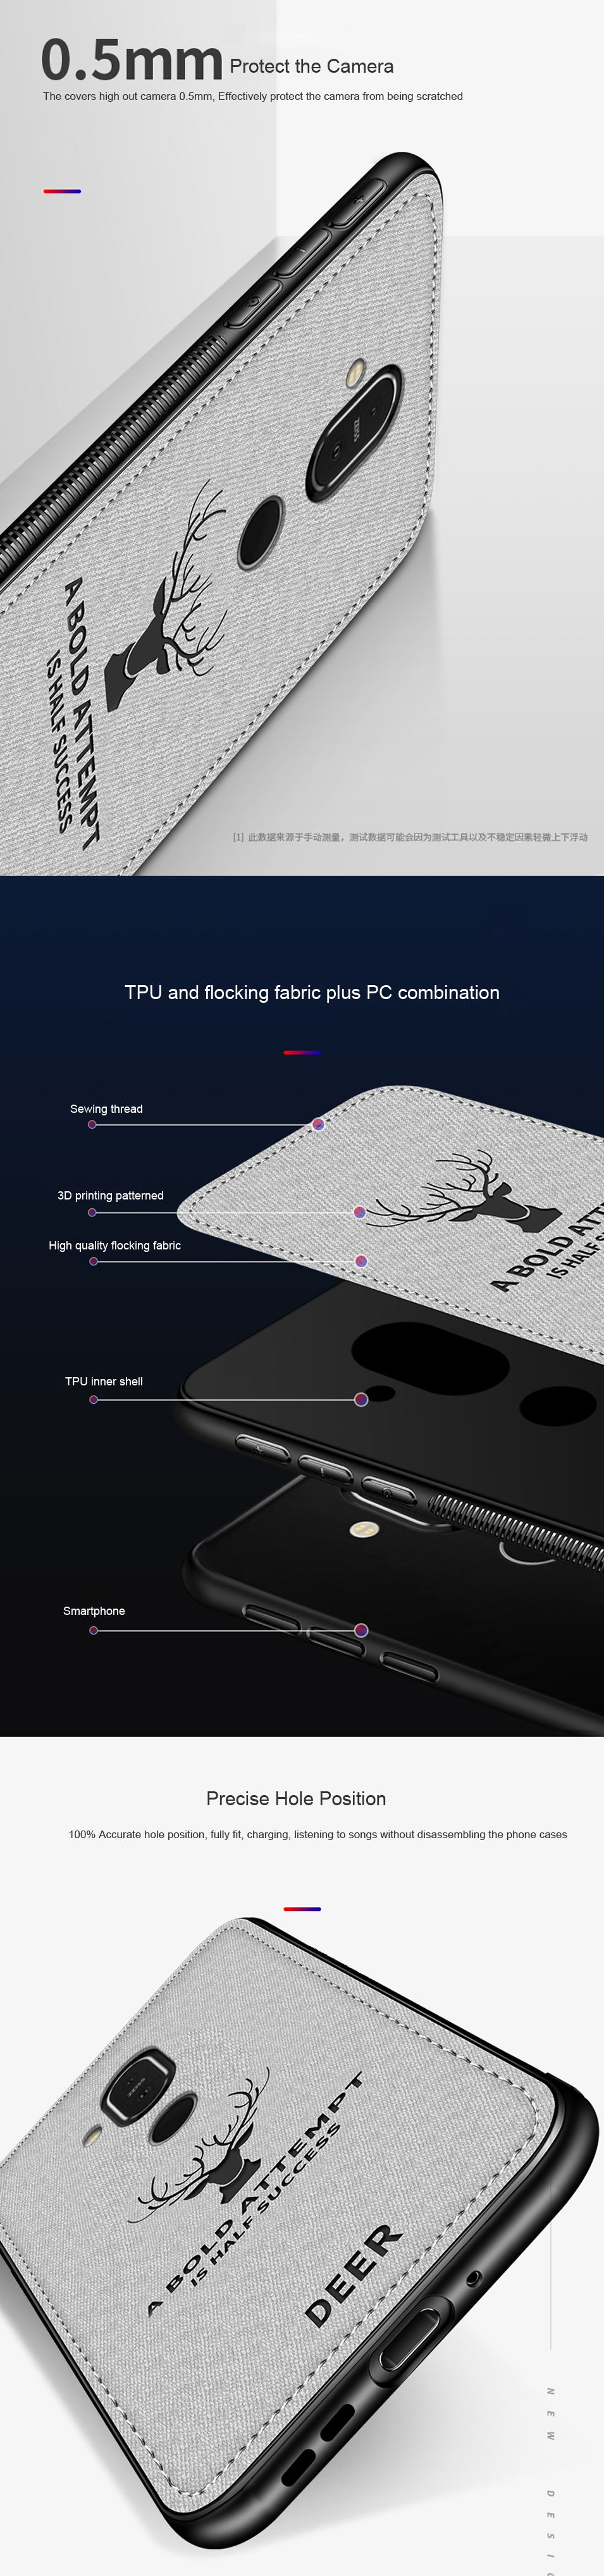 DEER Patterned Classic Retro Cloth Cases for Nokia 7 Plus x7 x6 x5 8 Sirocco Case Soft Back Cover For Nokia X7 X6 X5 Shell Coque (10)